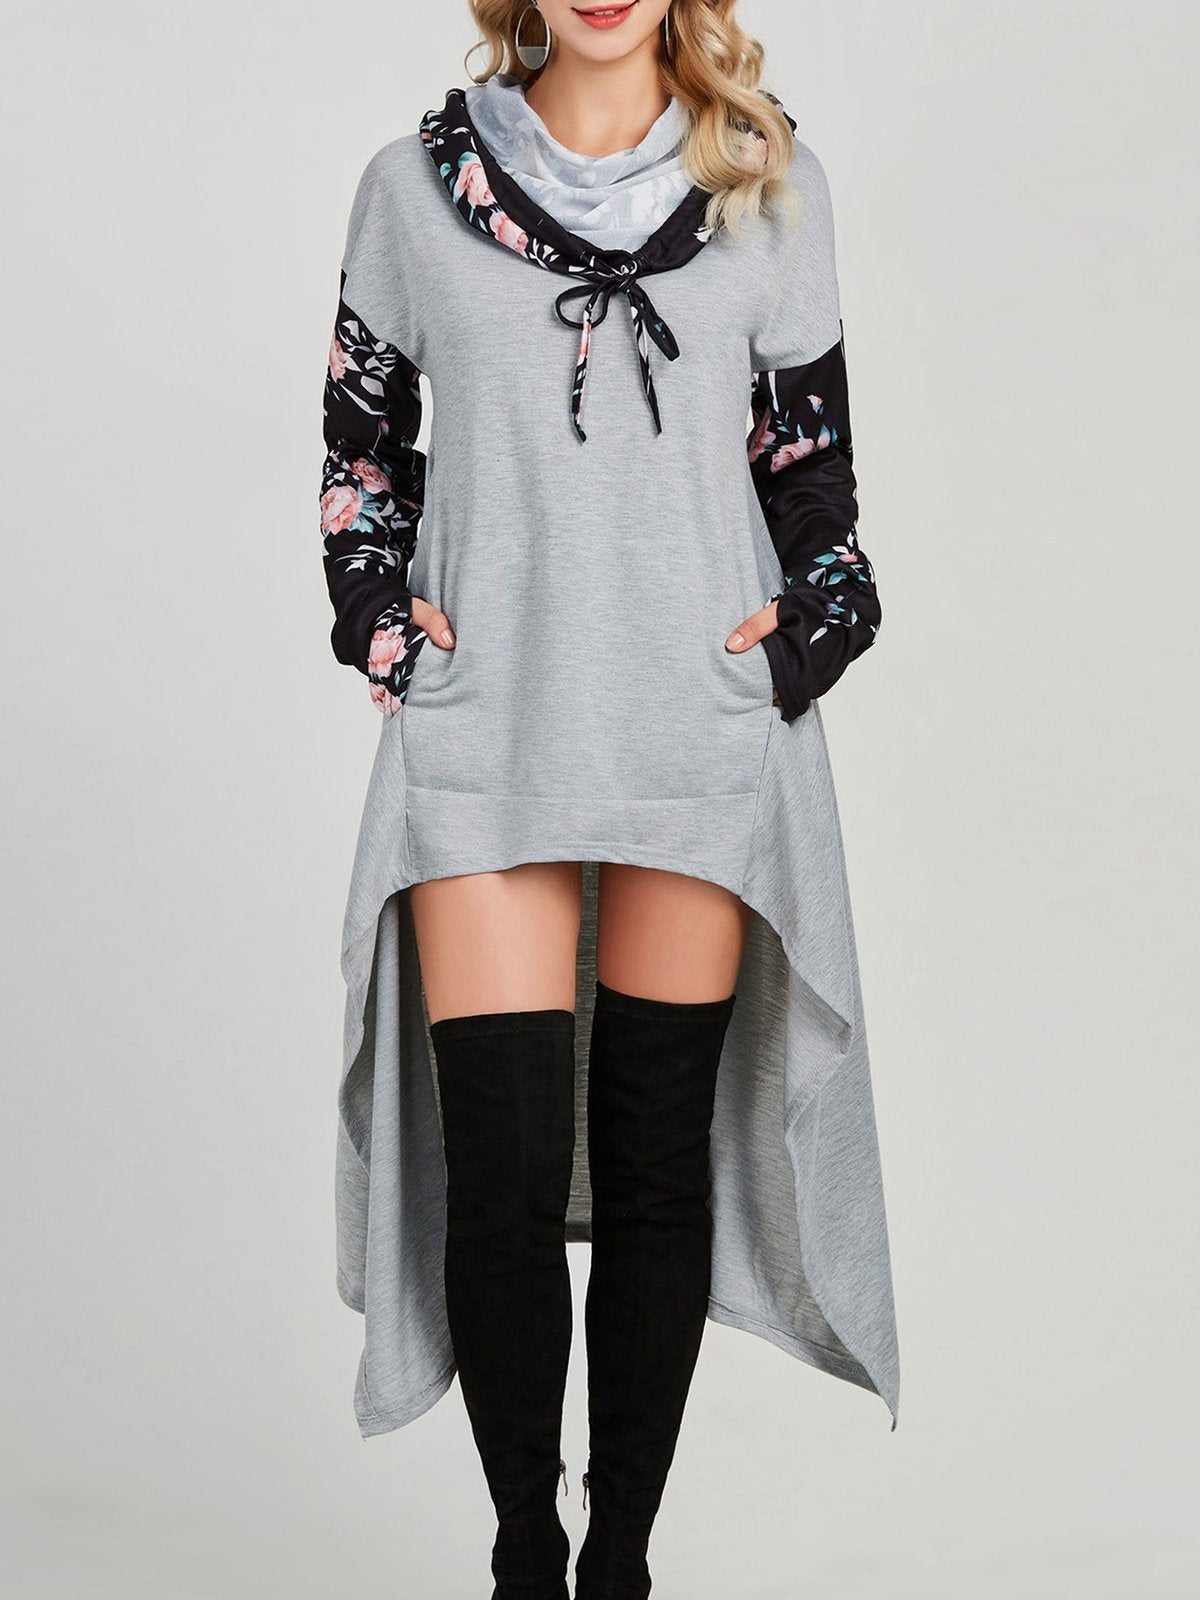 Floral Pullover Tunic Sweatshirts With Hoodie